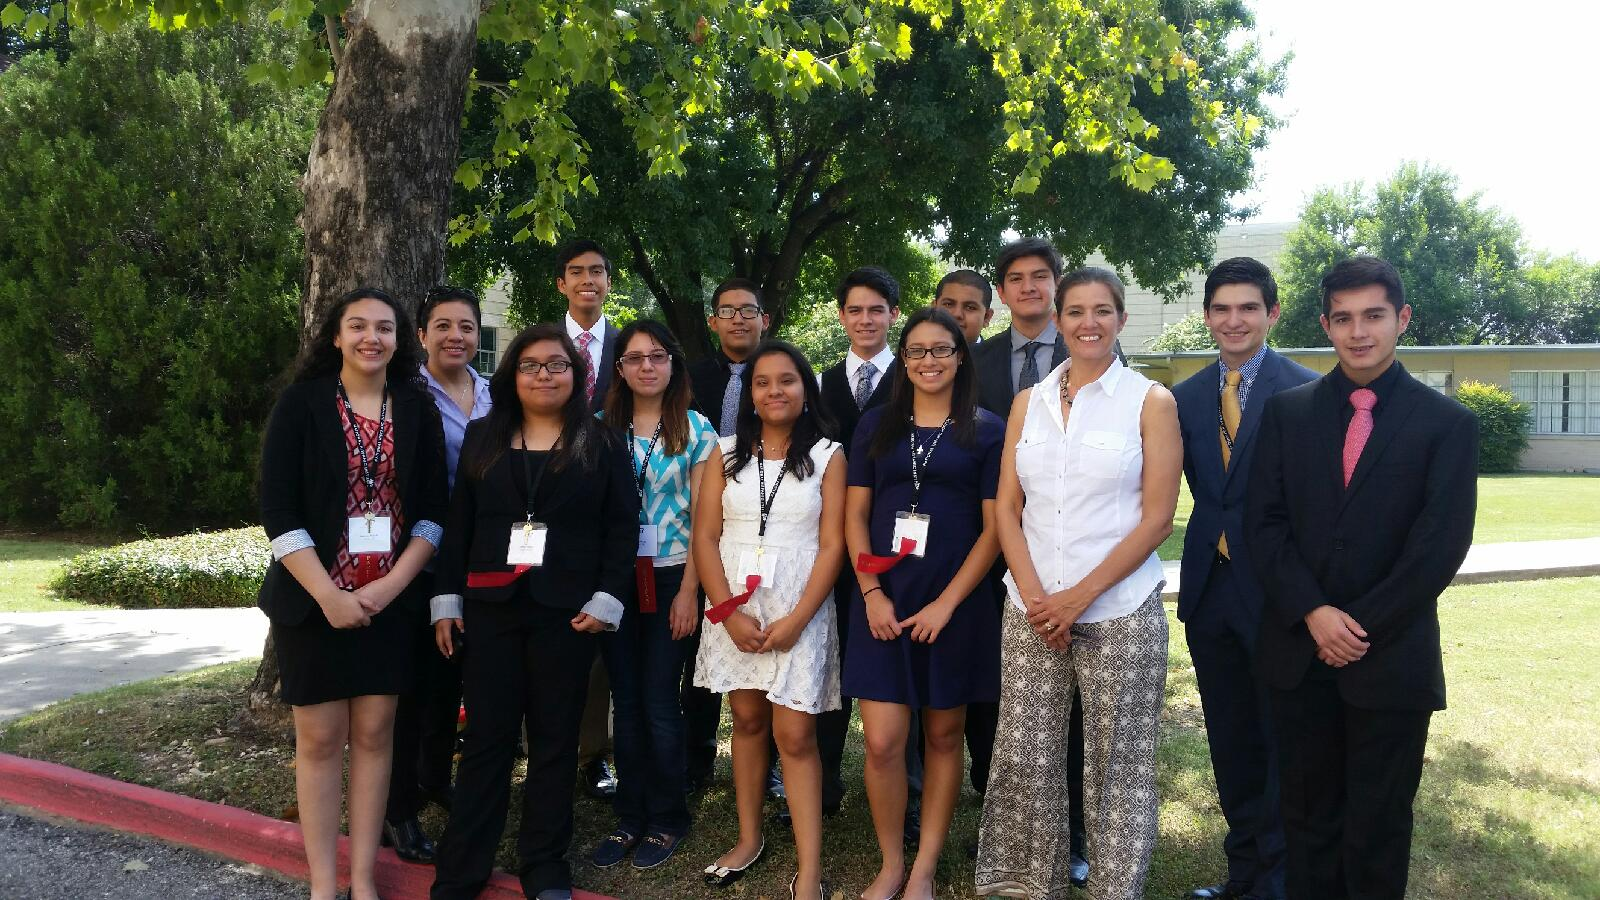 Xochitl Yanez from State Farm Foundation visits the 2016 NHI Texas Star Great Debate program.